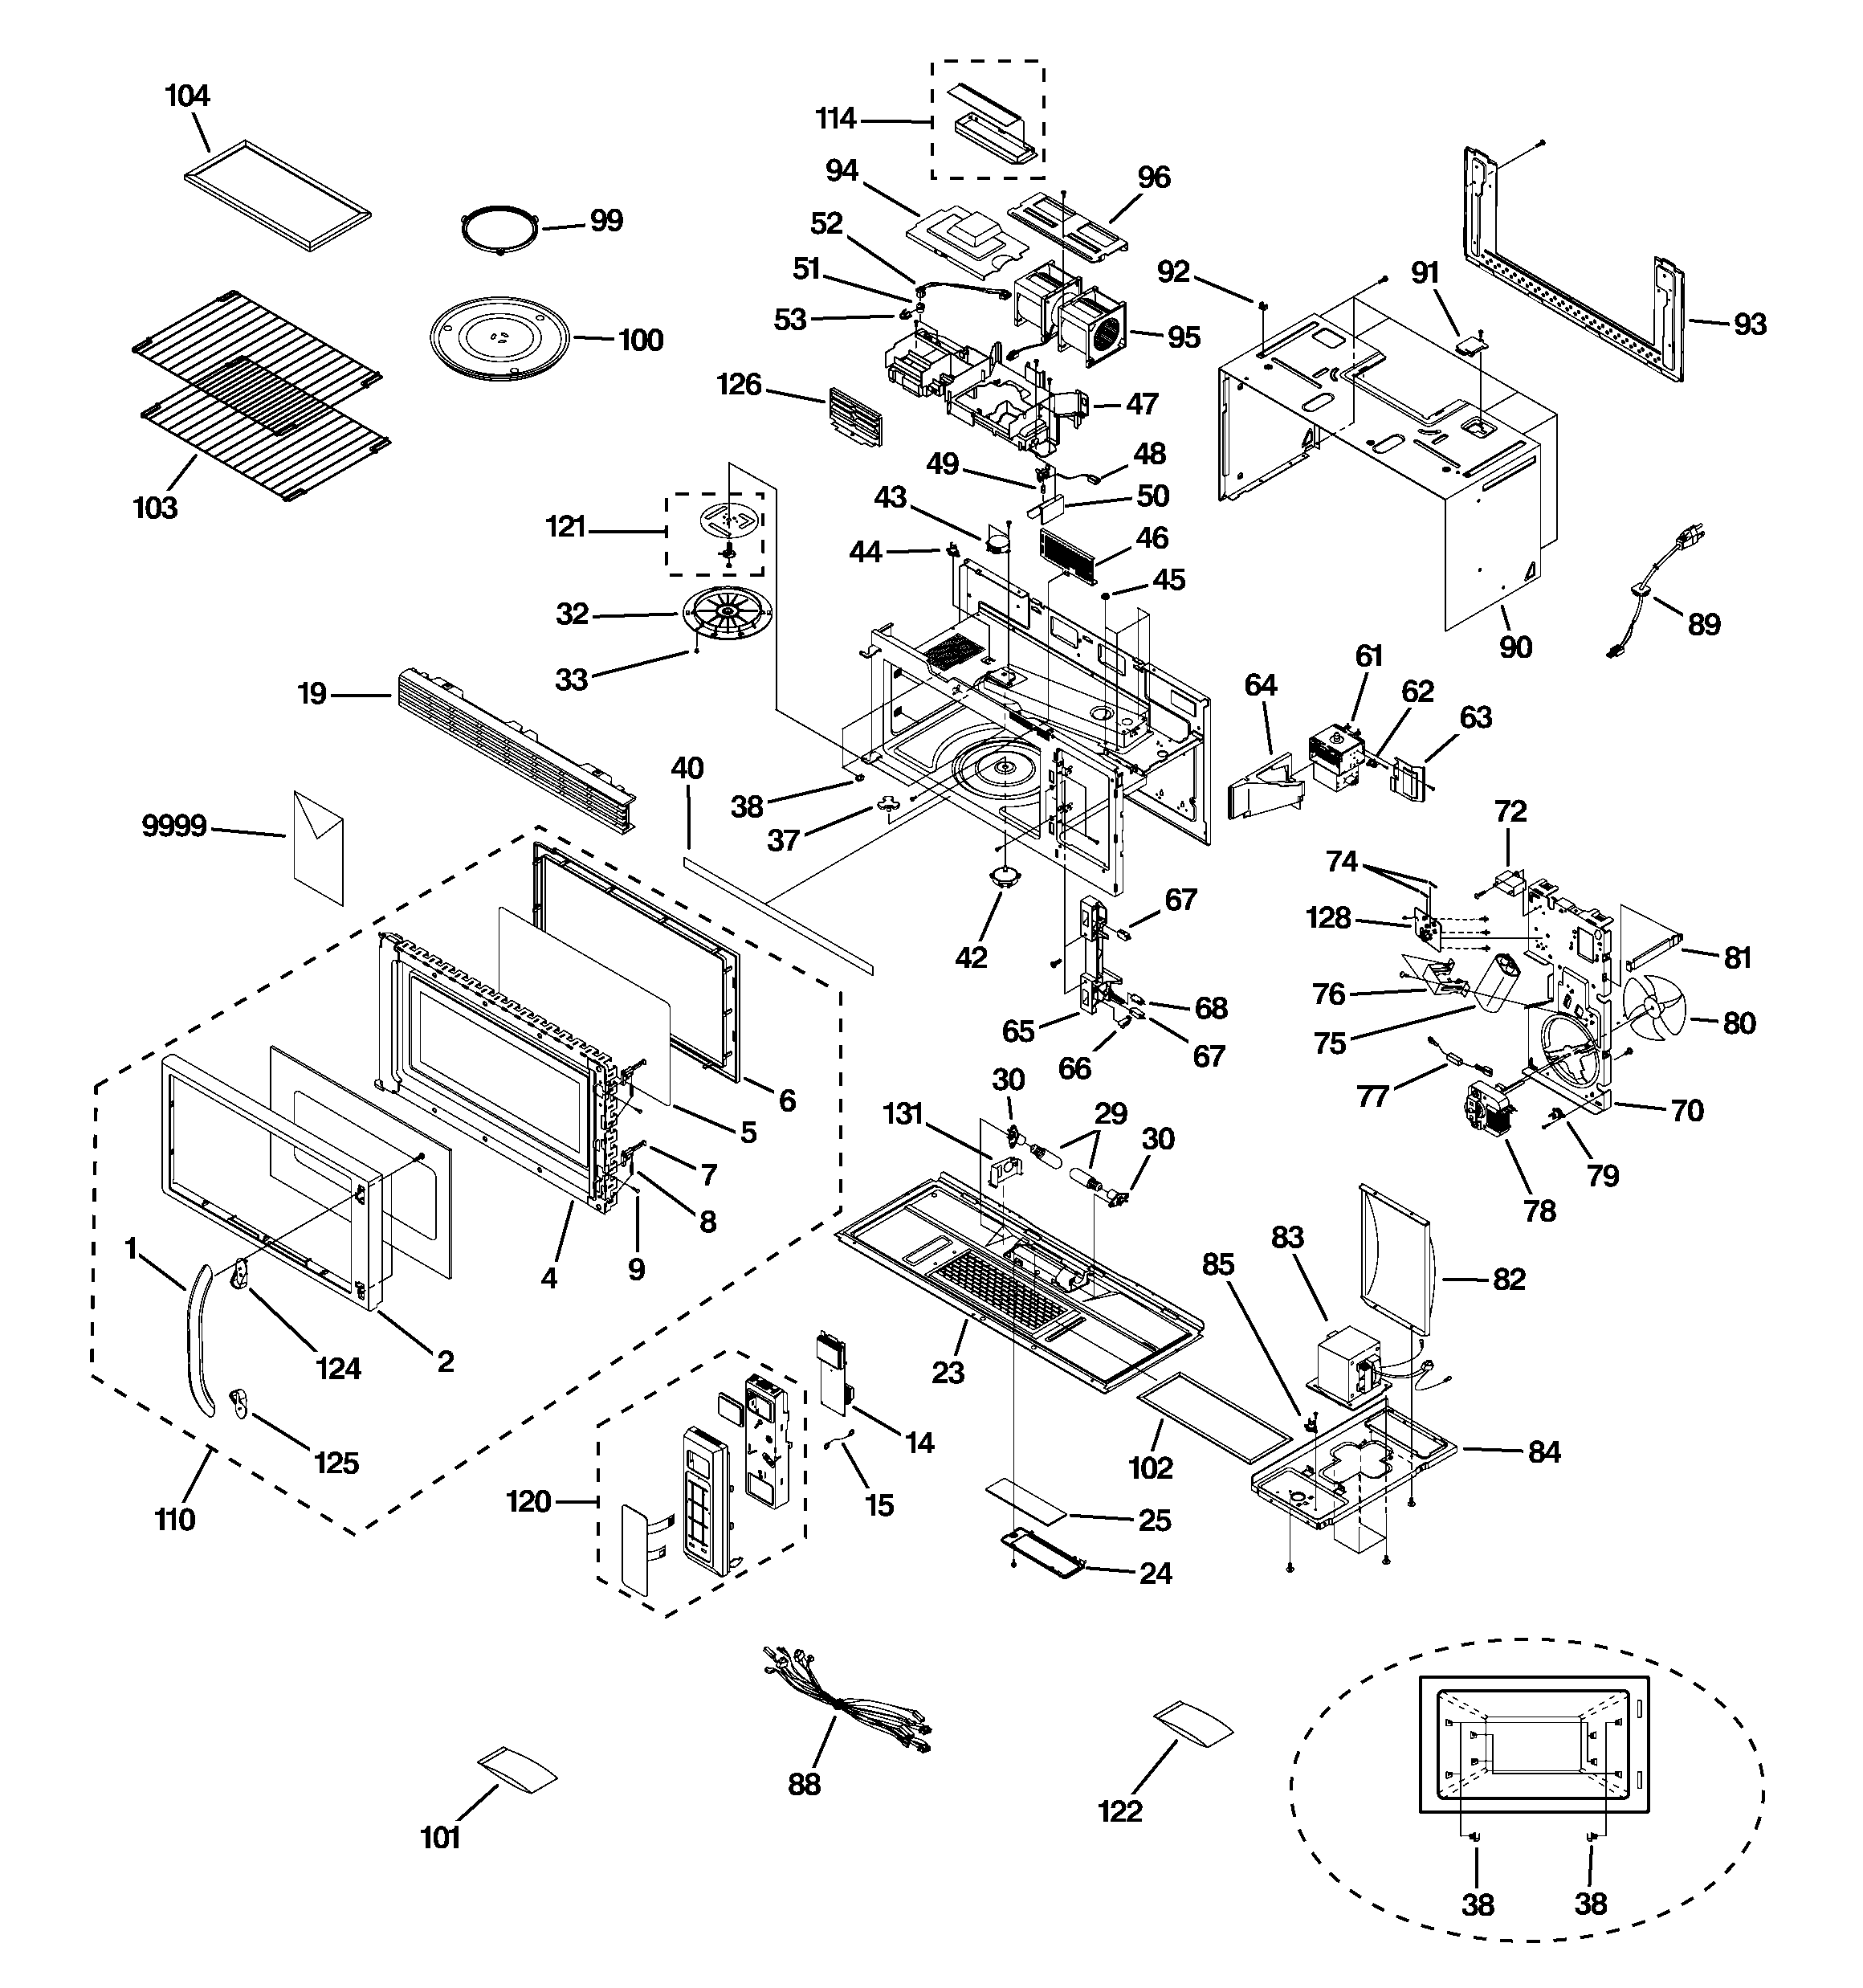 G0604228 00001?resize\\\\\\\\\\\\\\\\\\\\\\\\\\\\\\\=665%2C709 wiring diagram for range hood fan nautilus range hood wiring  at bakdesigns.co